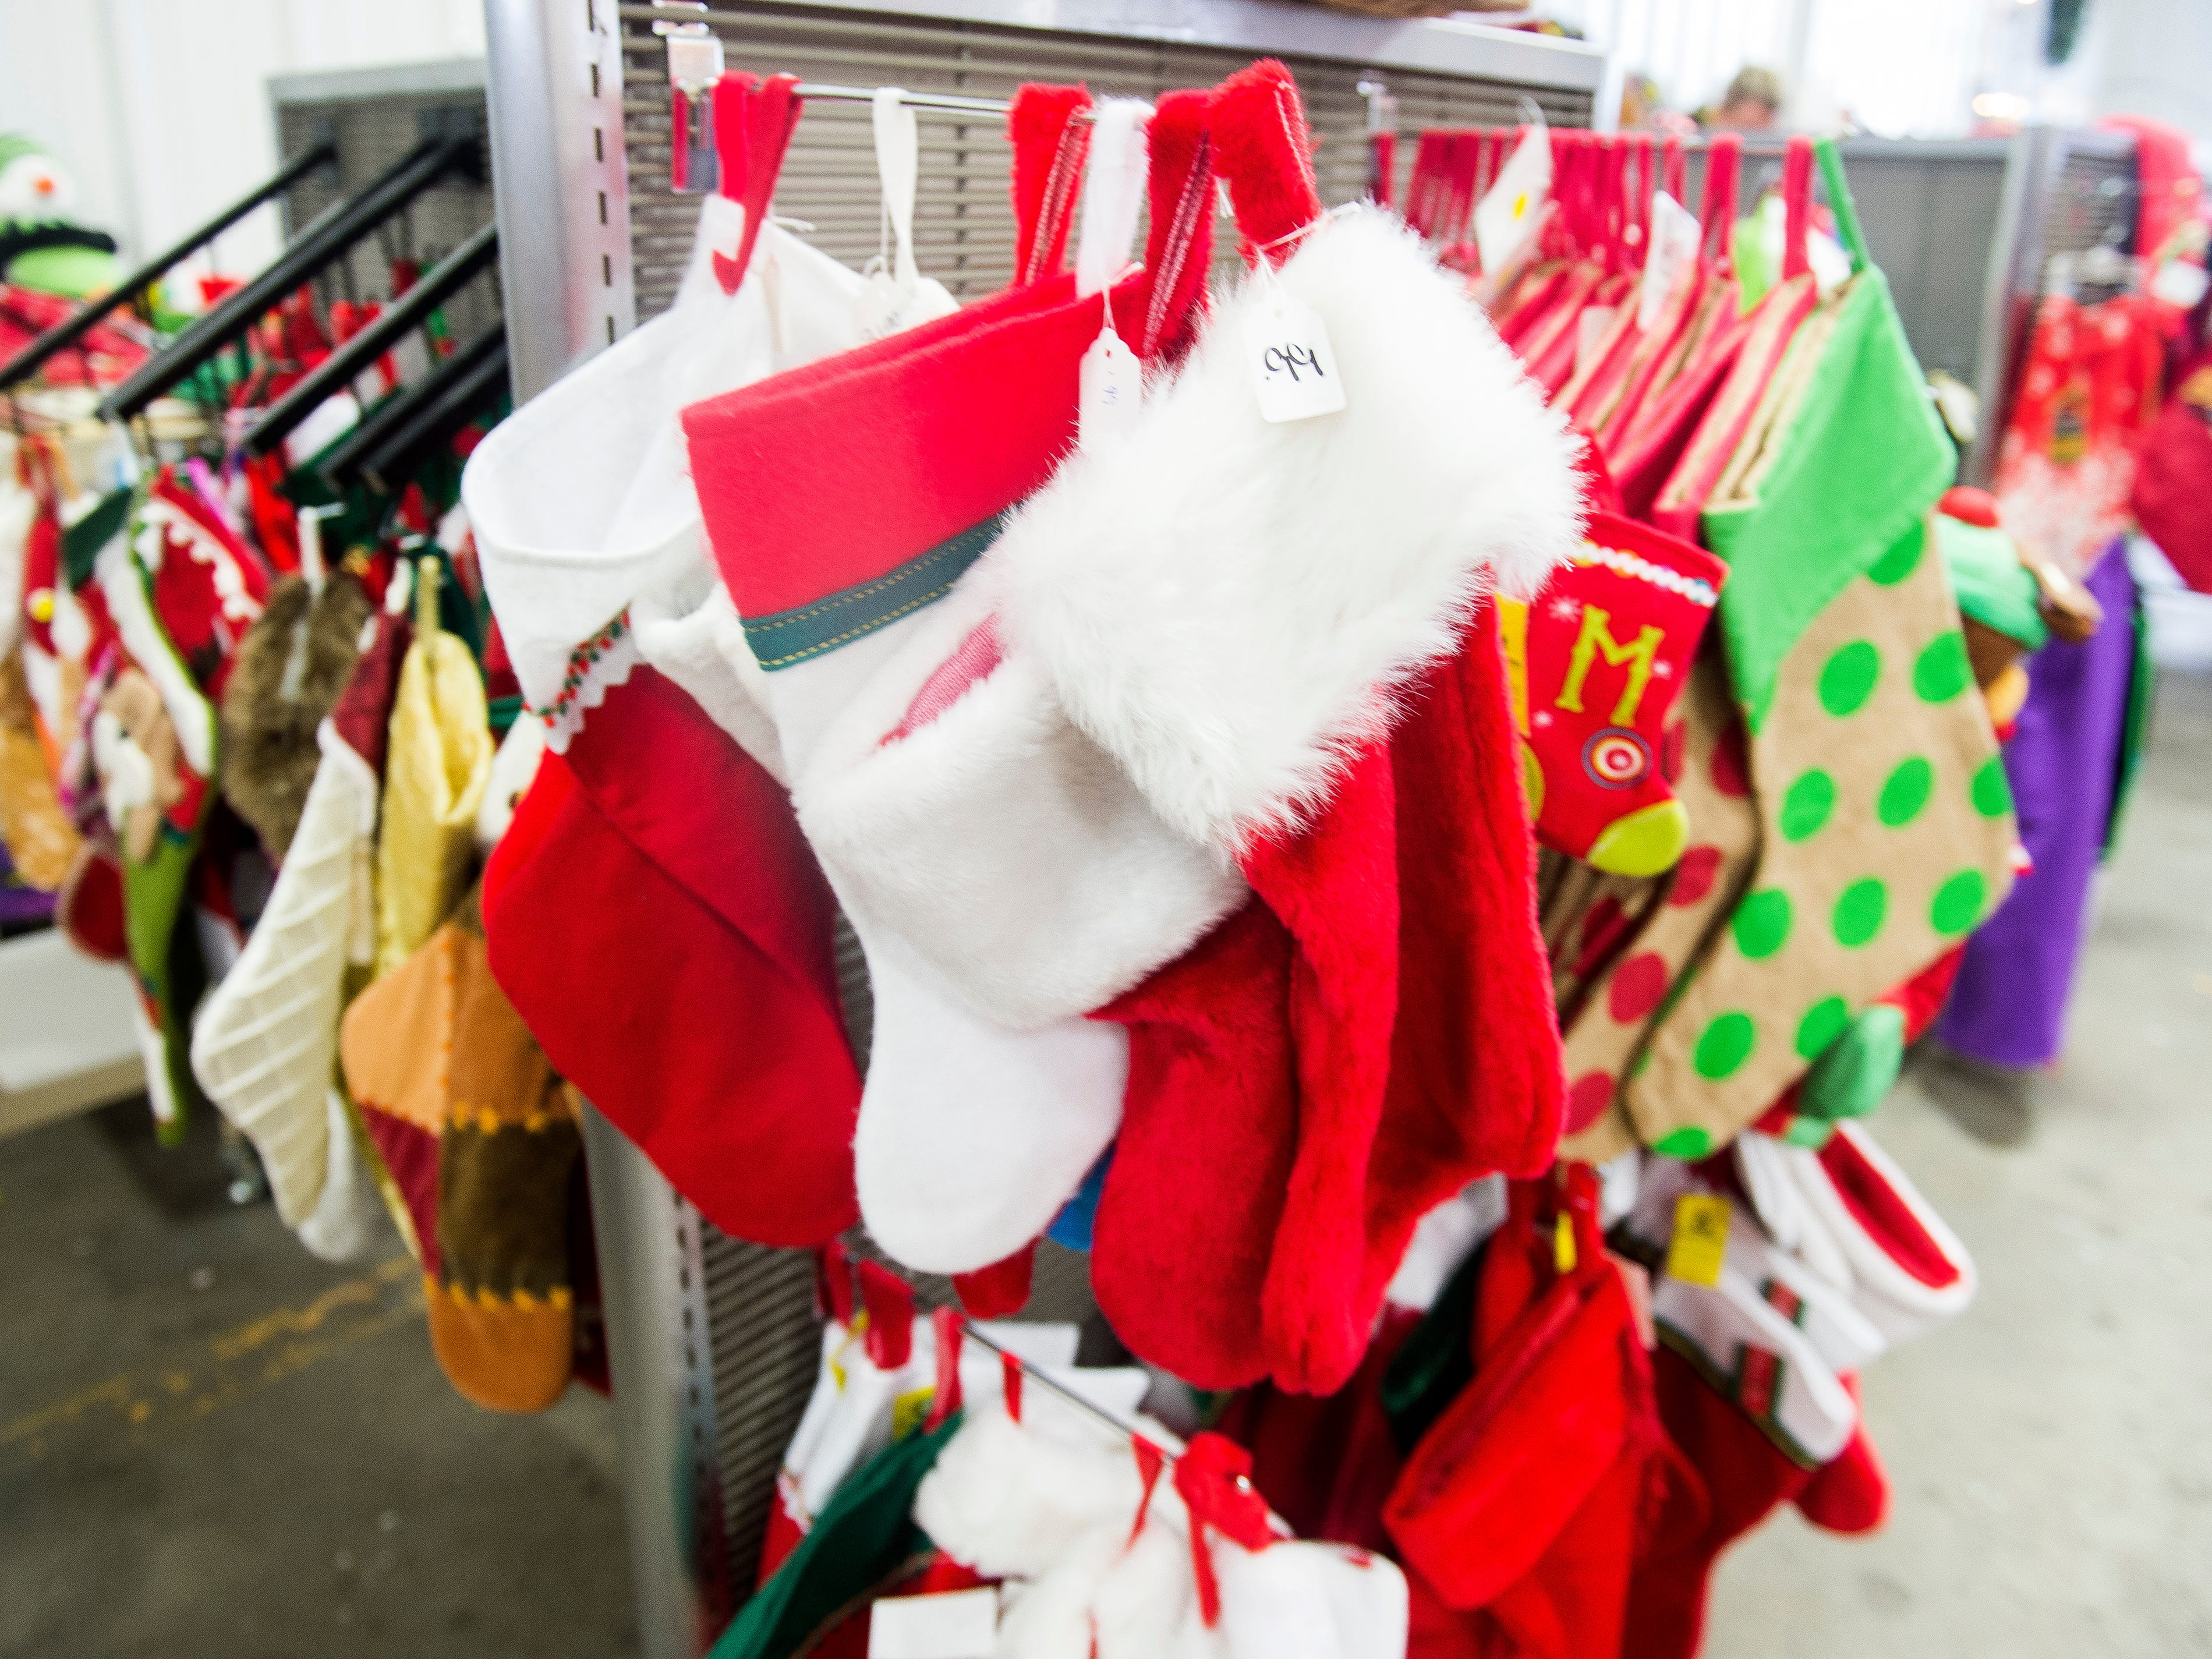 Christmas stockings for sale at the KARM Christmas Store located at 9629 Parkside Drive in Knoxville on Tuesday, November 13, 2018.